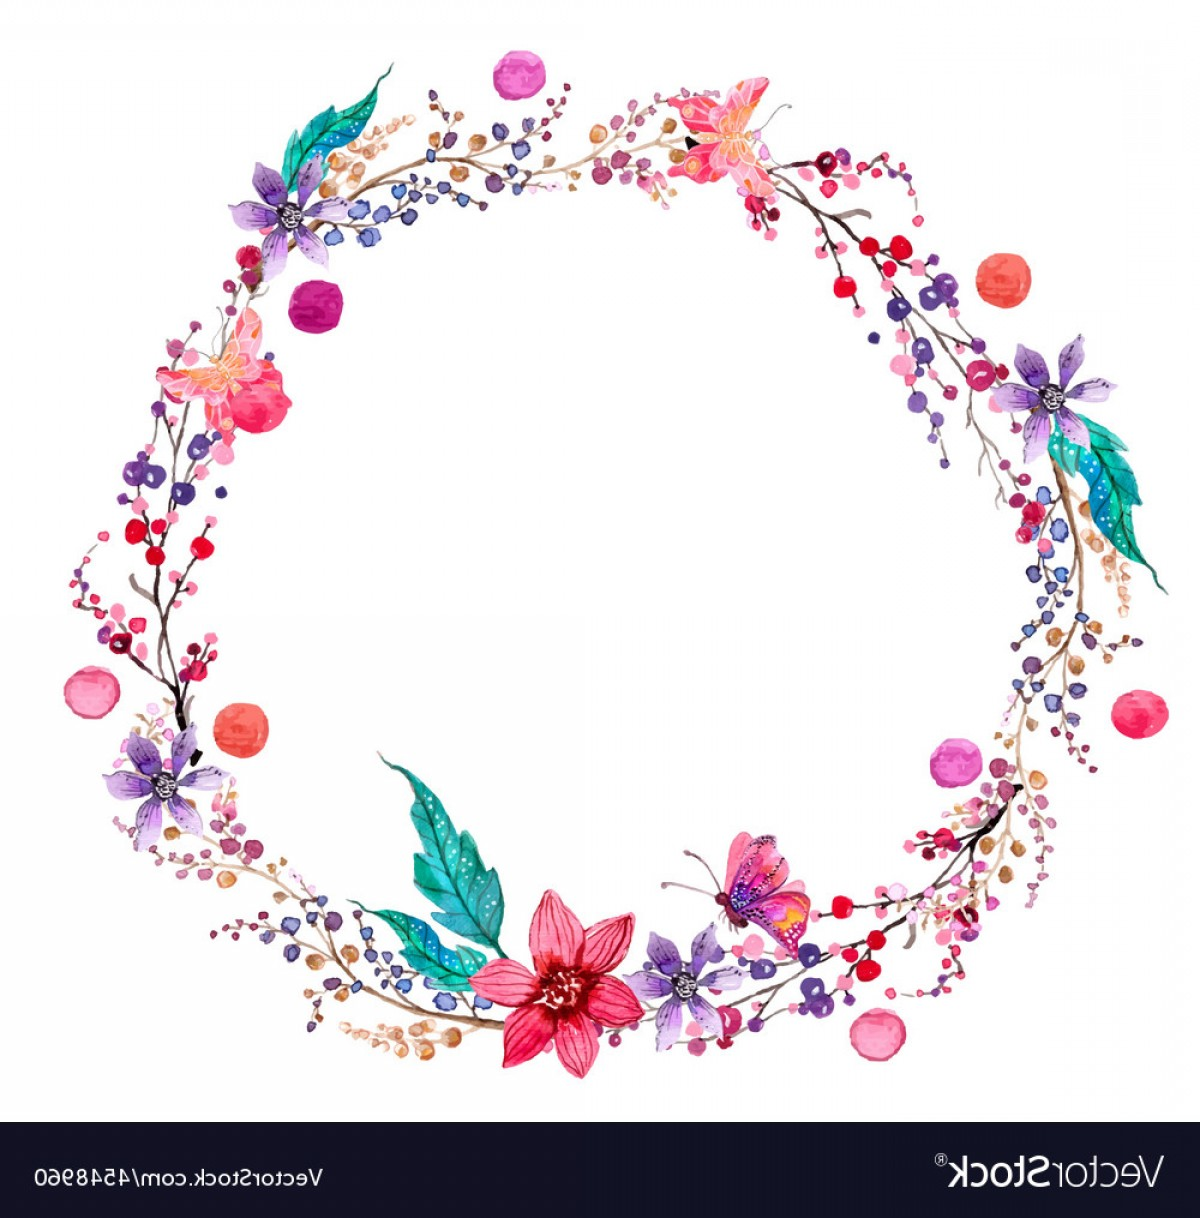 Summer Wreath Free Vector Watercolor: Watercolor Flower Wreath Background Vector